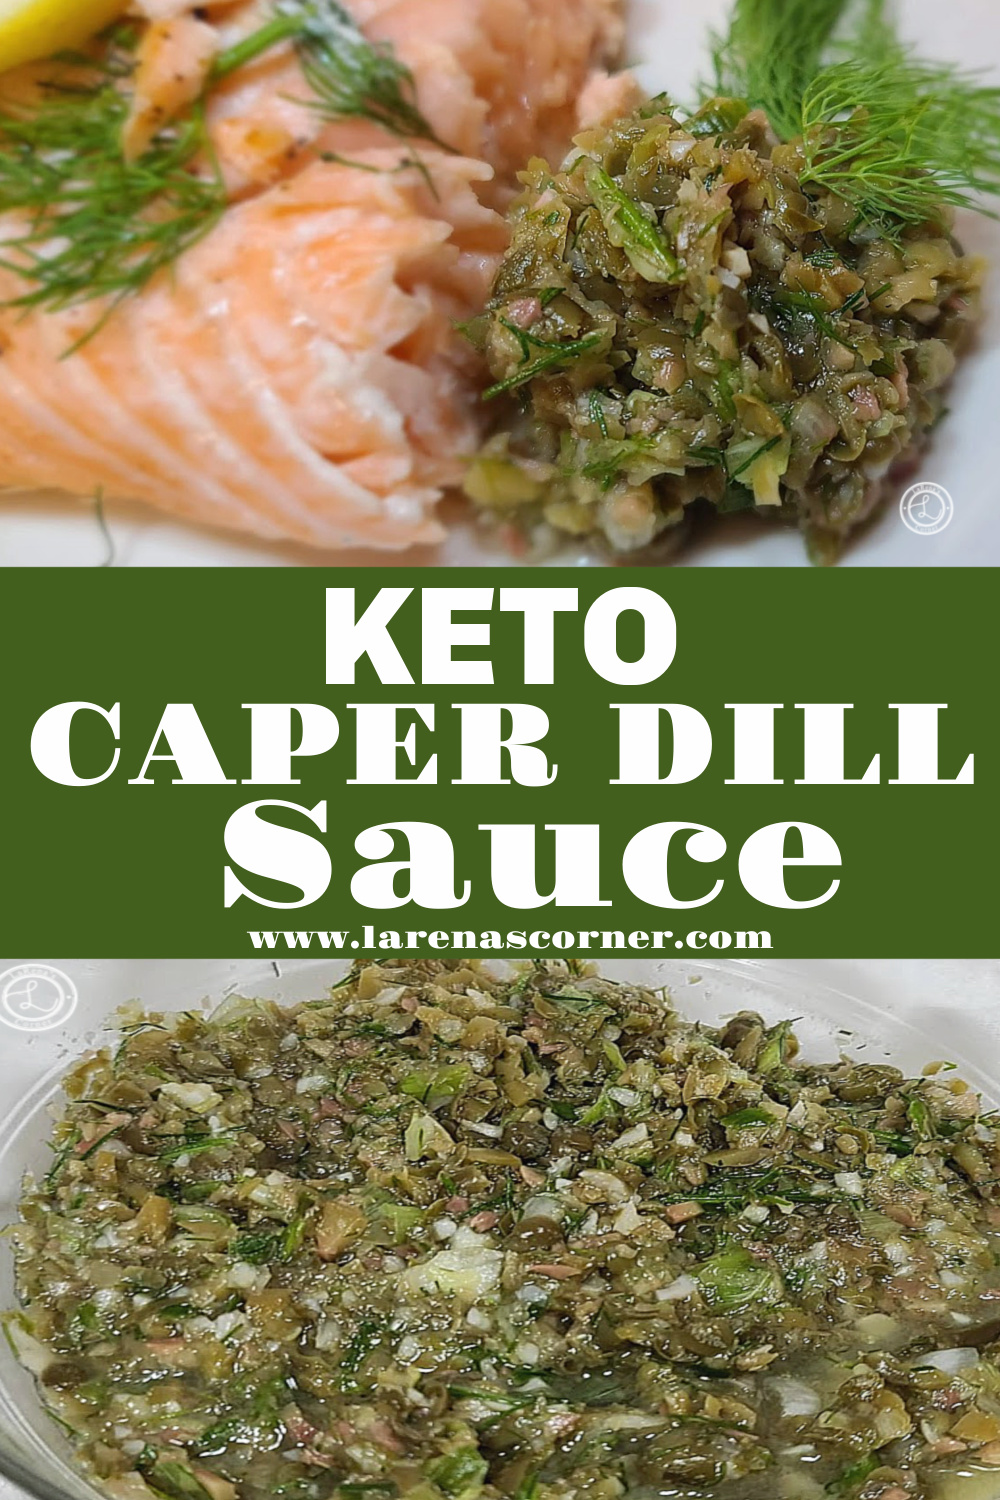 Keto Caper Dill Sauce. Two pictures. One is a bowl of the sauce. Top picture is some sauce next to a piece of cooked salmon on a plate.